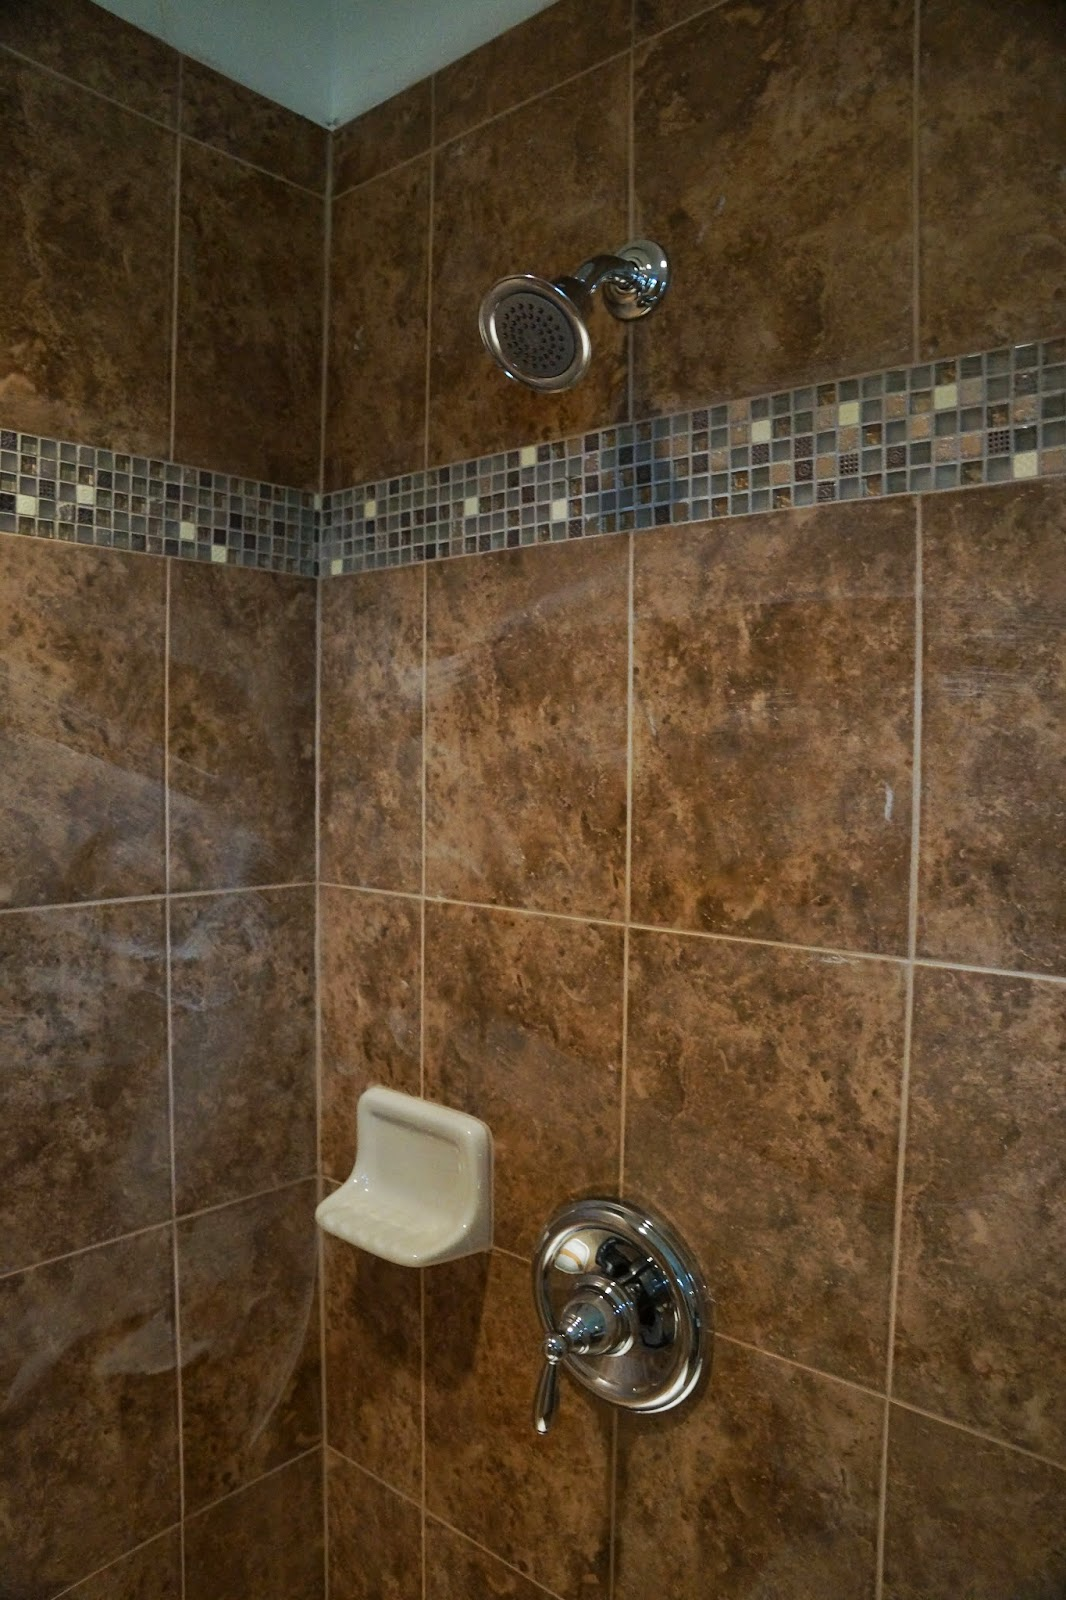 Picture of fixtures in the double shower in the master bathroom.